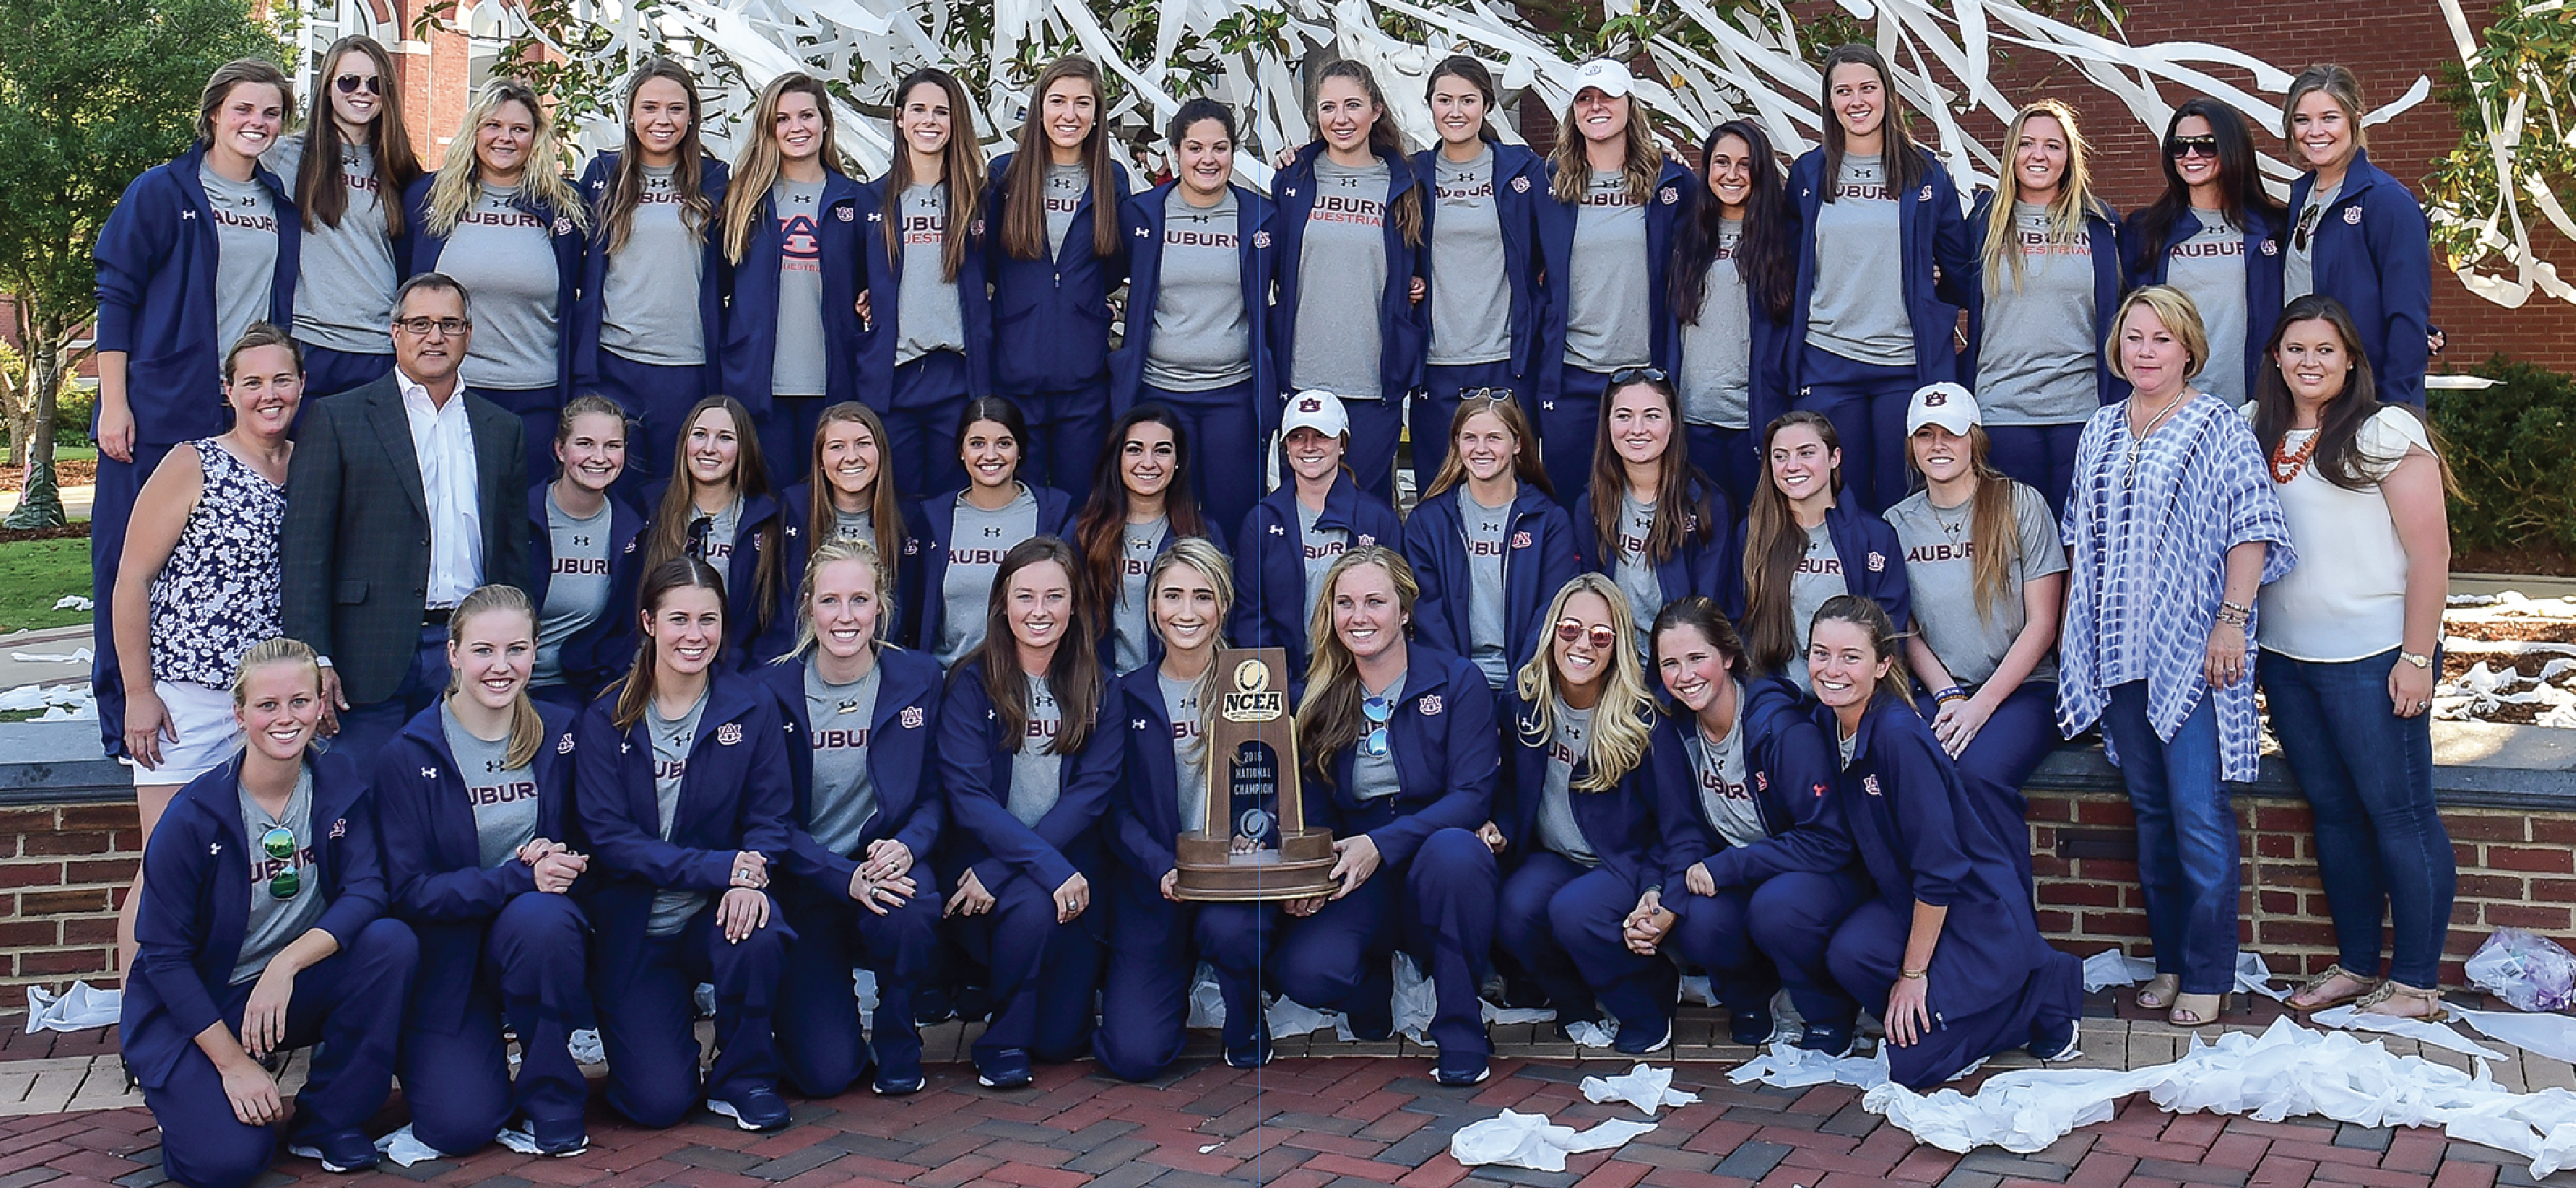 Equestrian Team after 2016 National Championship win